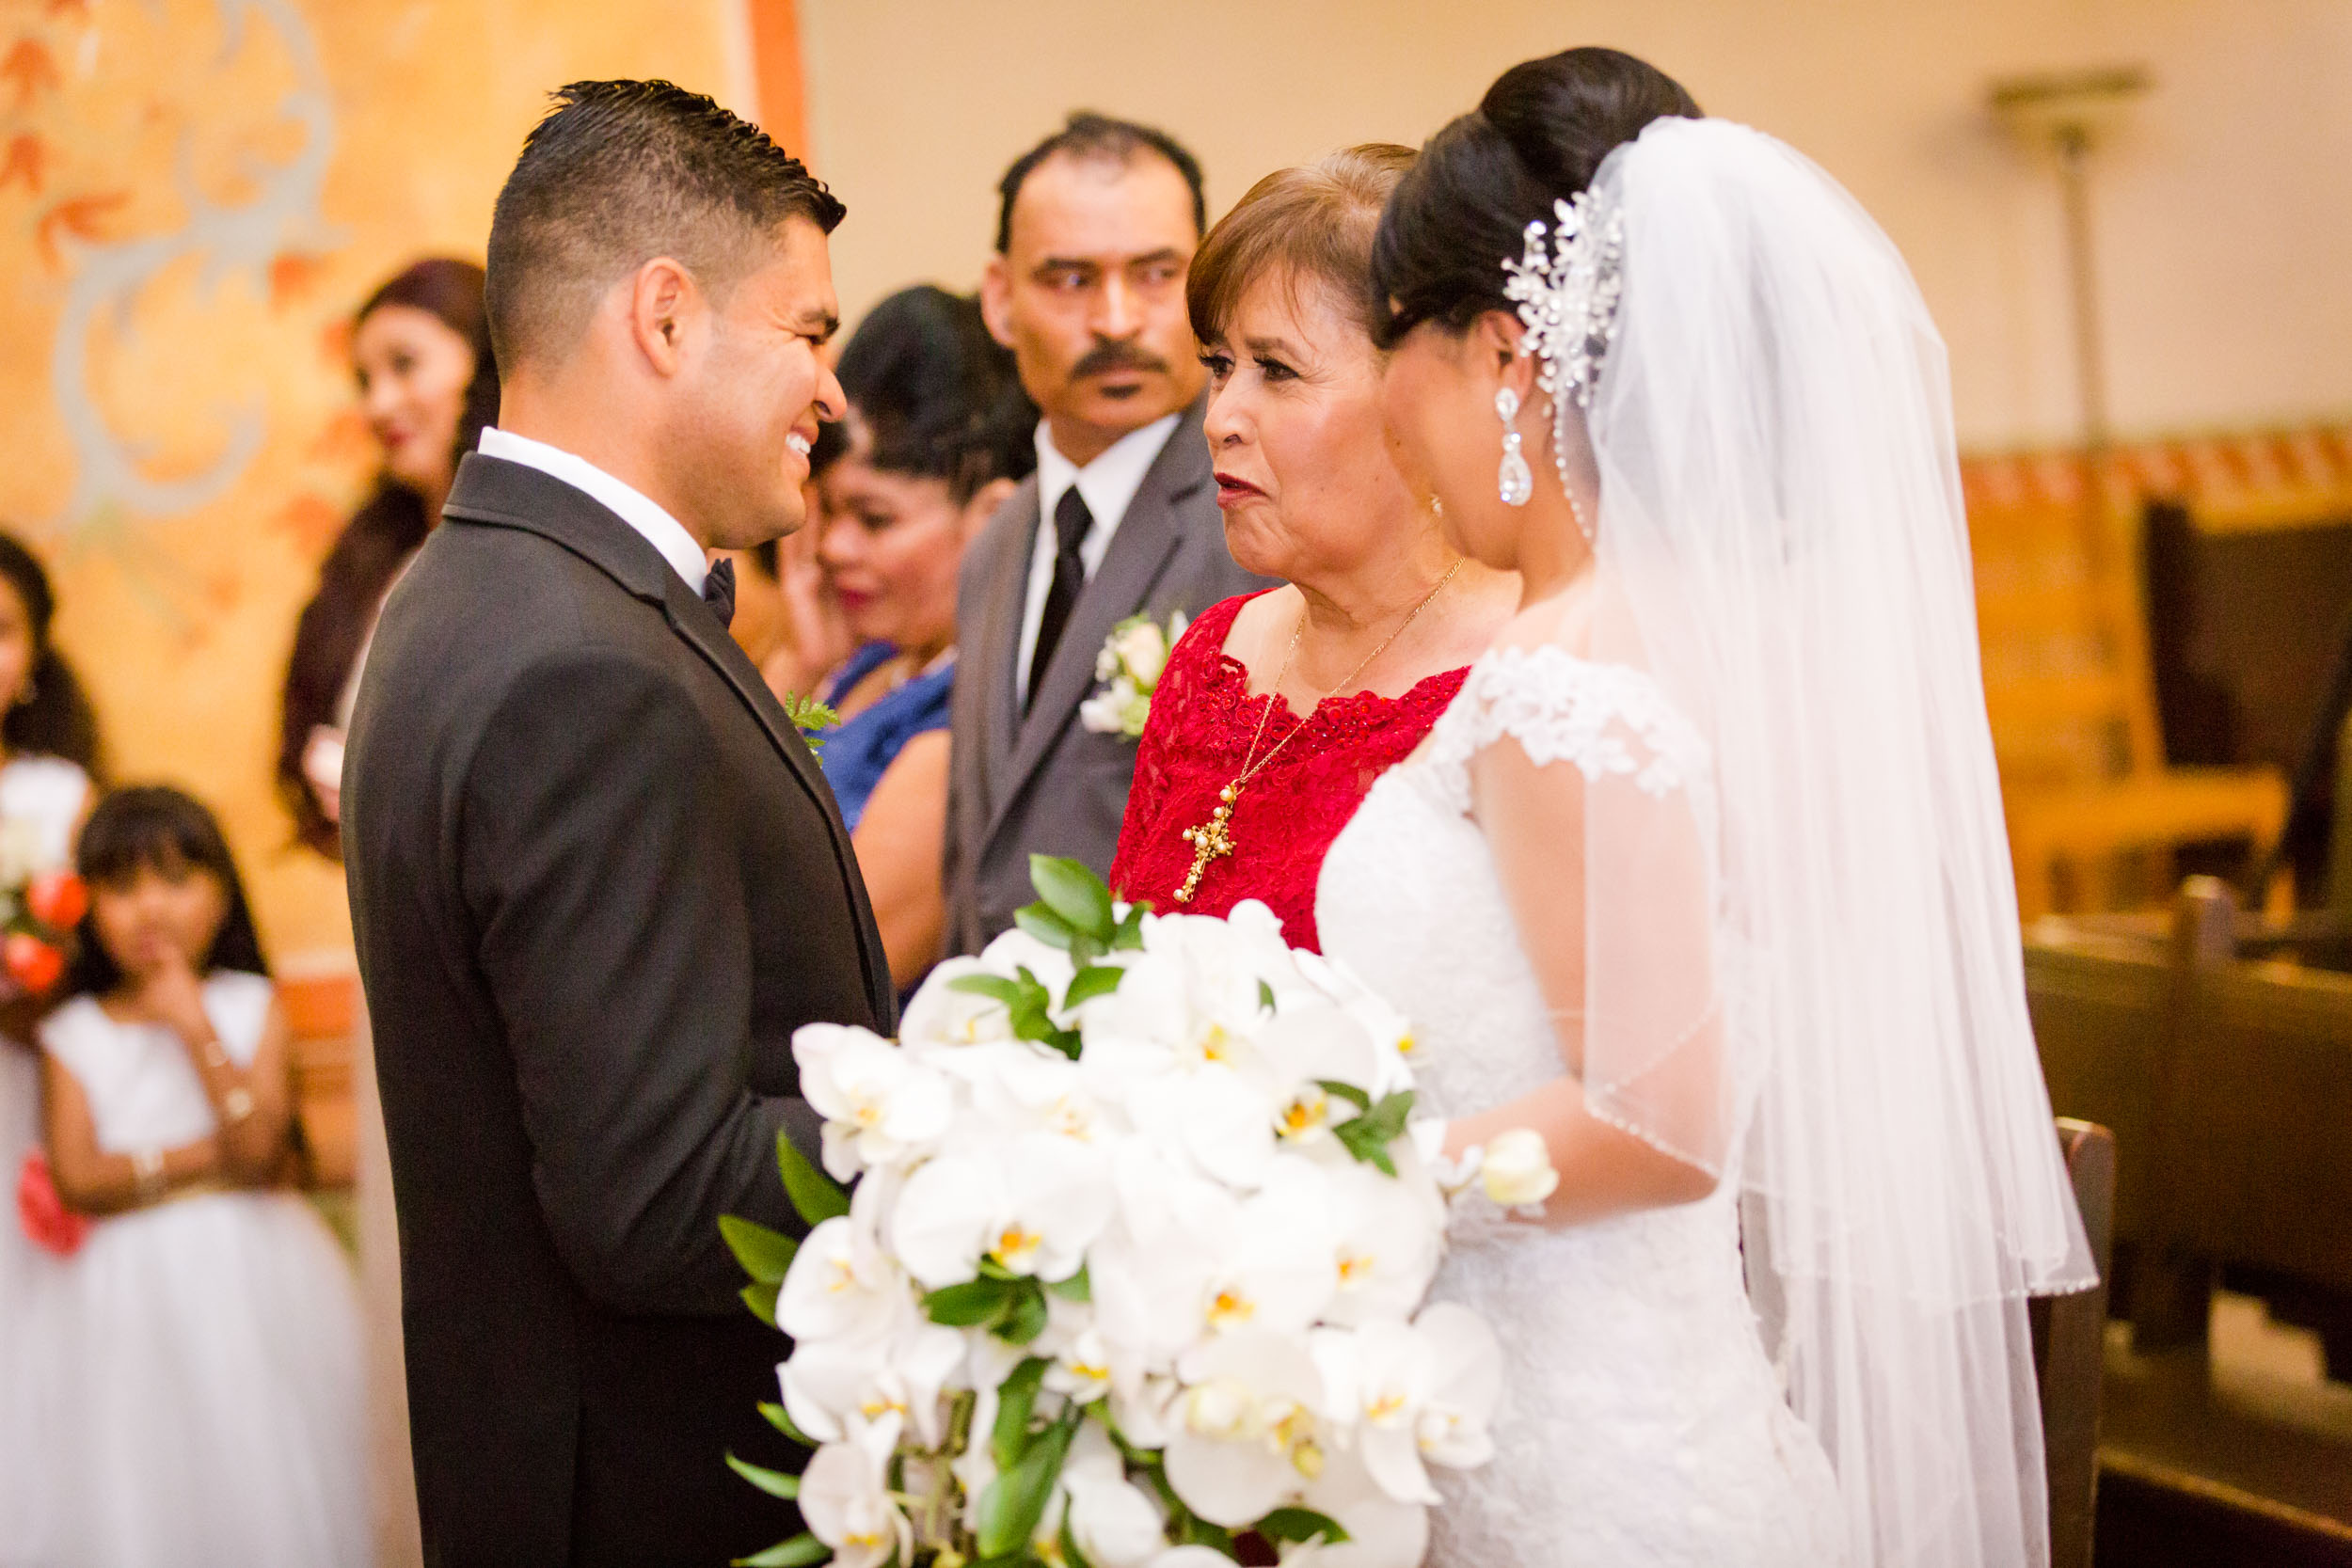 Our Wedding-251